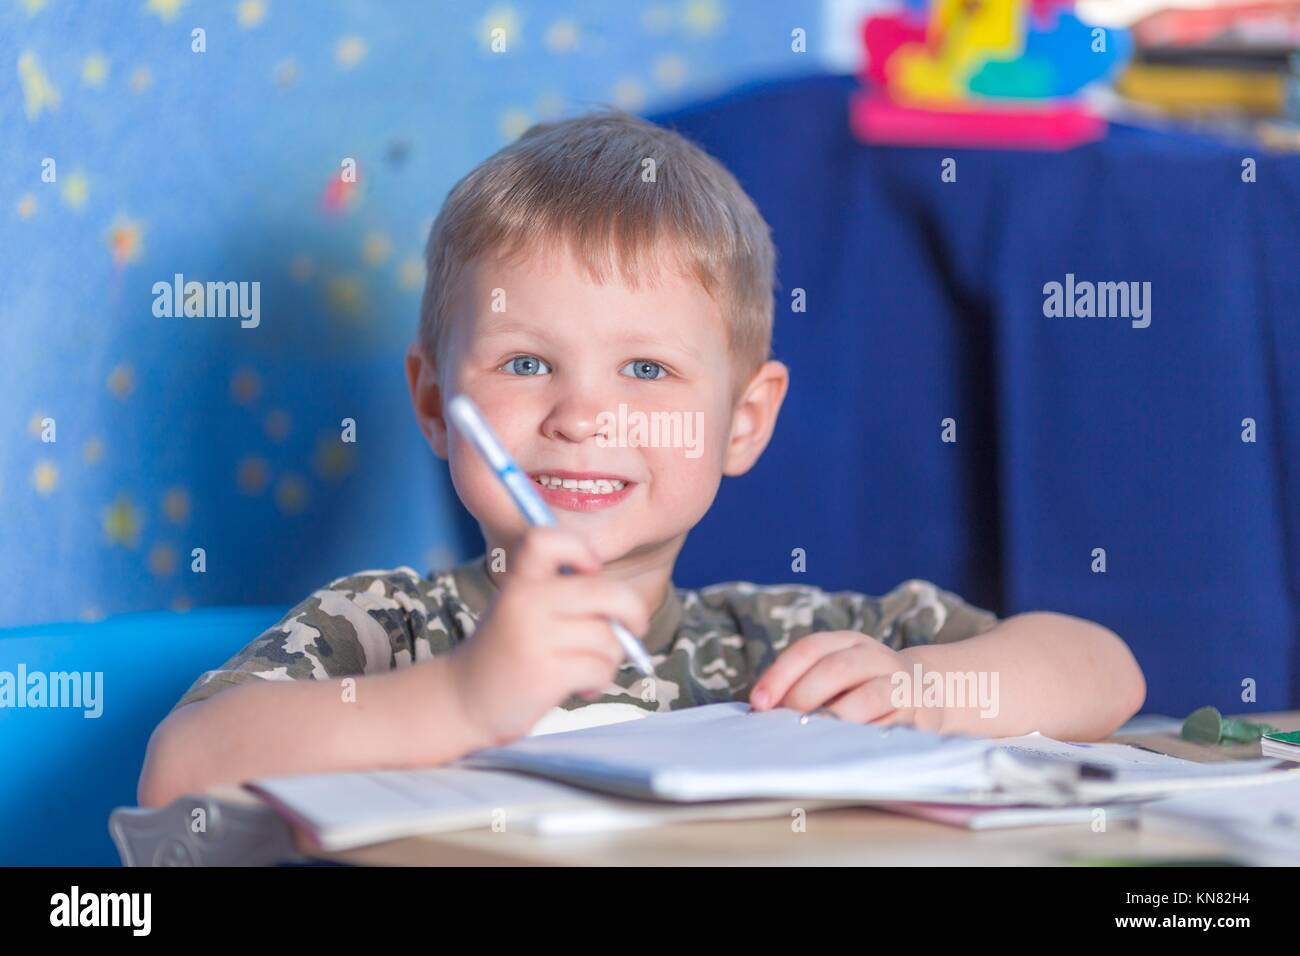 Preschool smiling boy learning to write literacy. - Stock Image